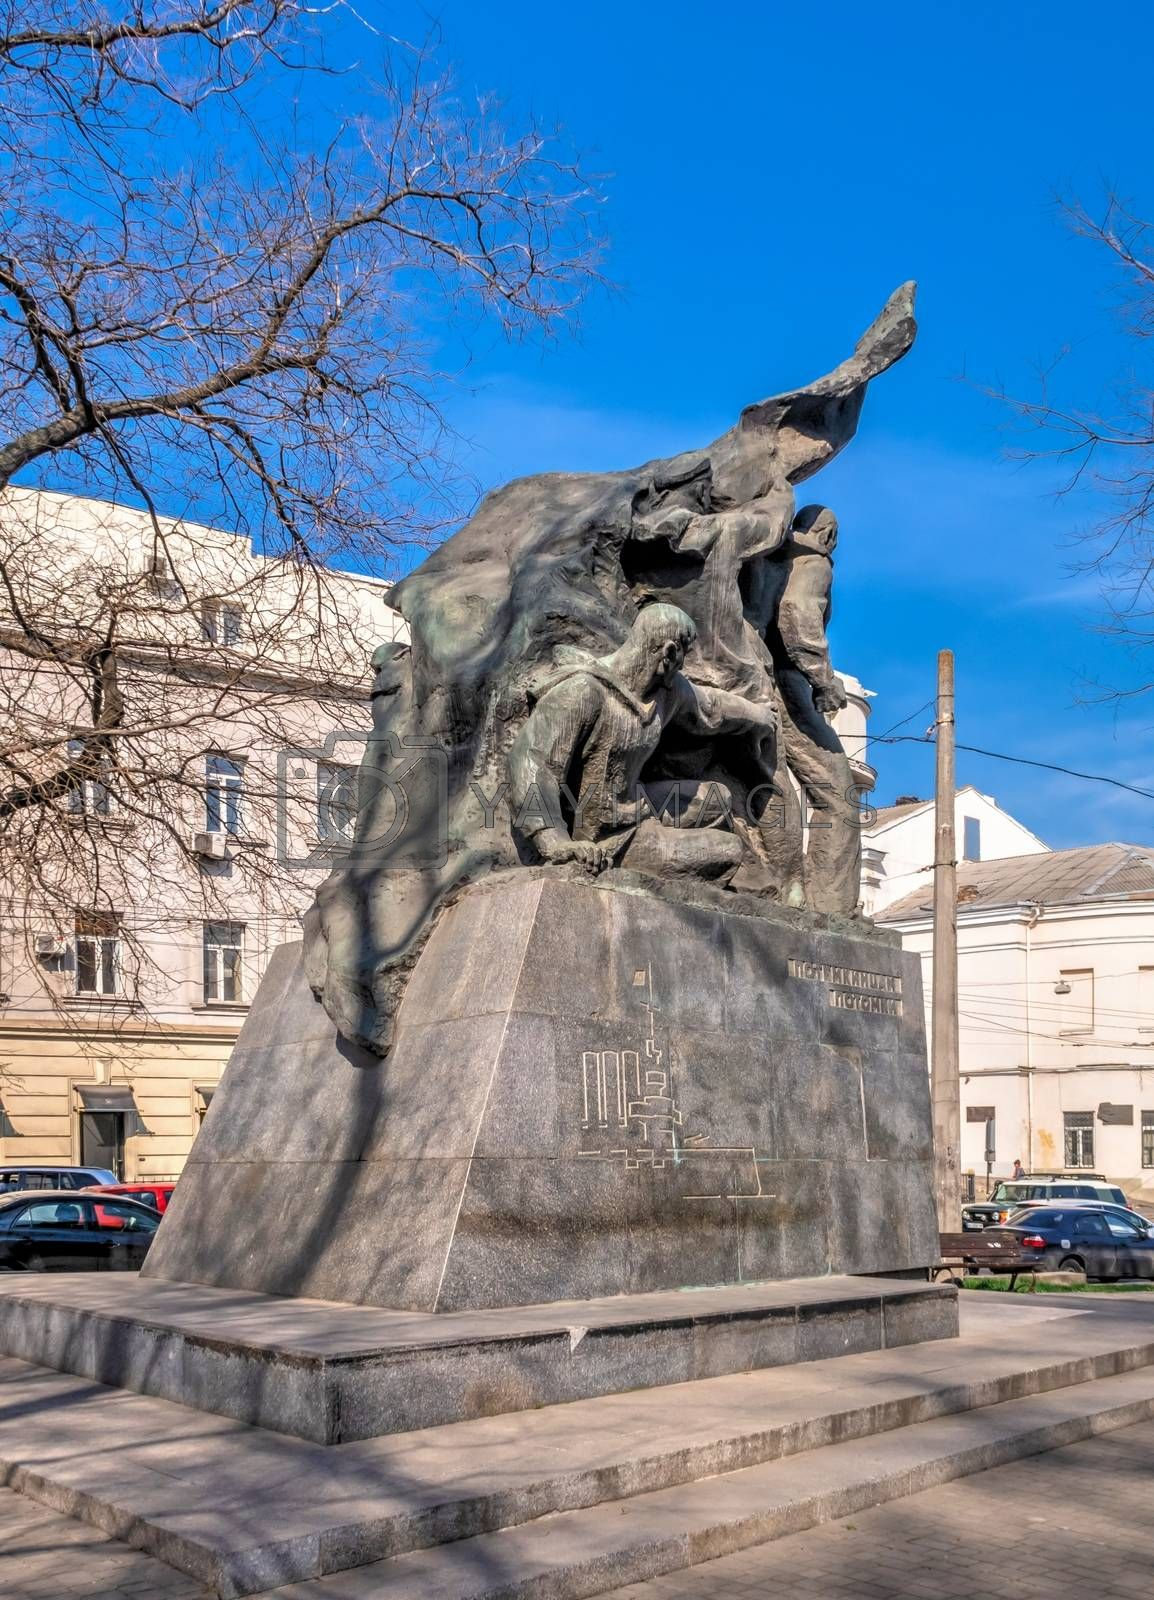 Odessa, Ukraine 03.11.2020. Monument to sailors of Battleship Potemkin, who supported workers revolt of 1905 in Odessa